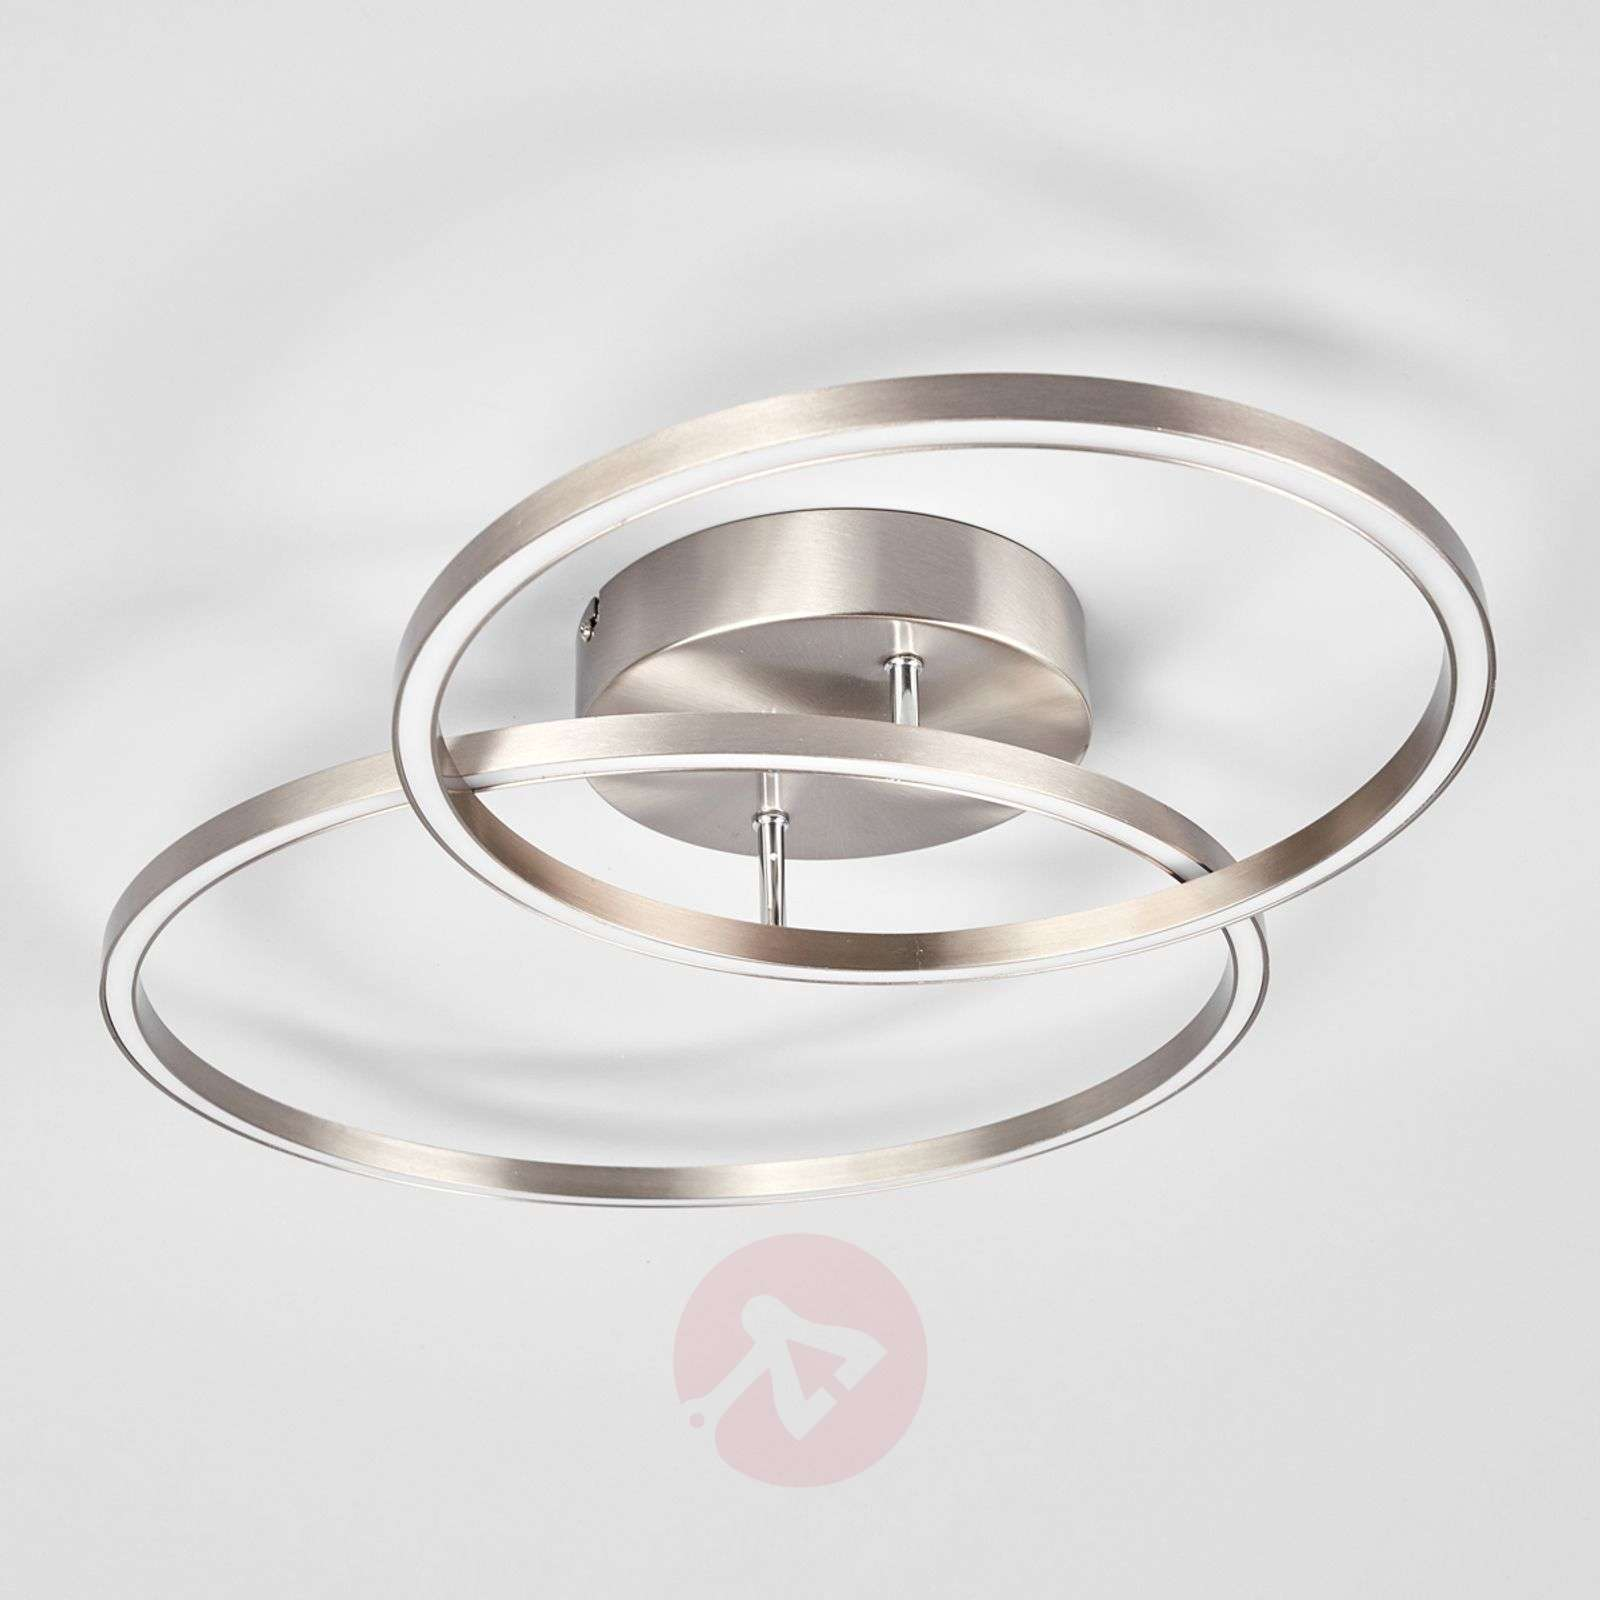 Two overlapping rings the Elmo LED ceiling lamp-9987047-03